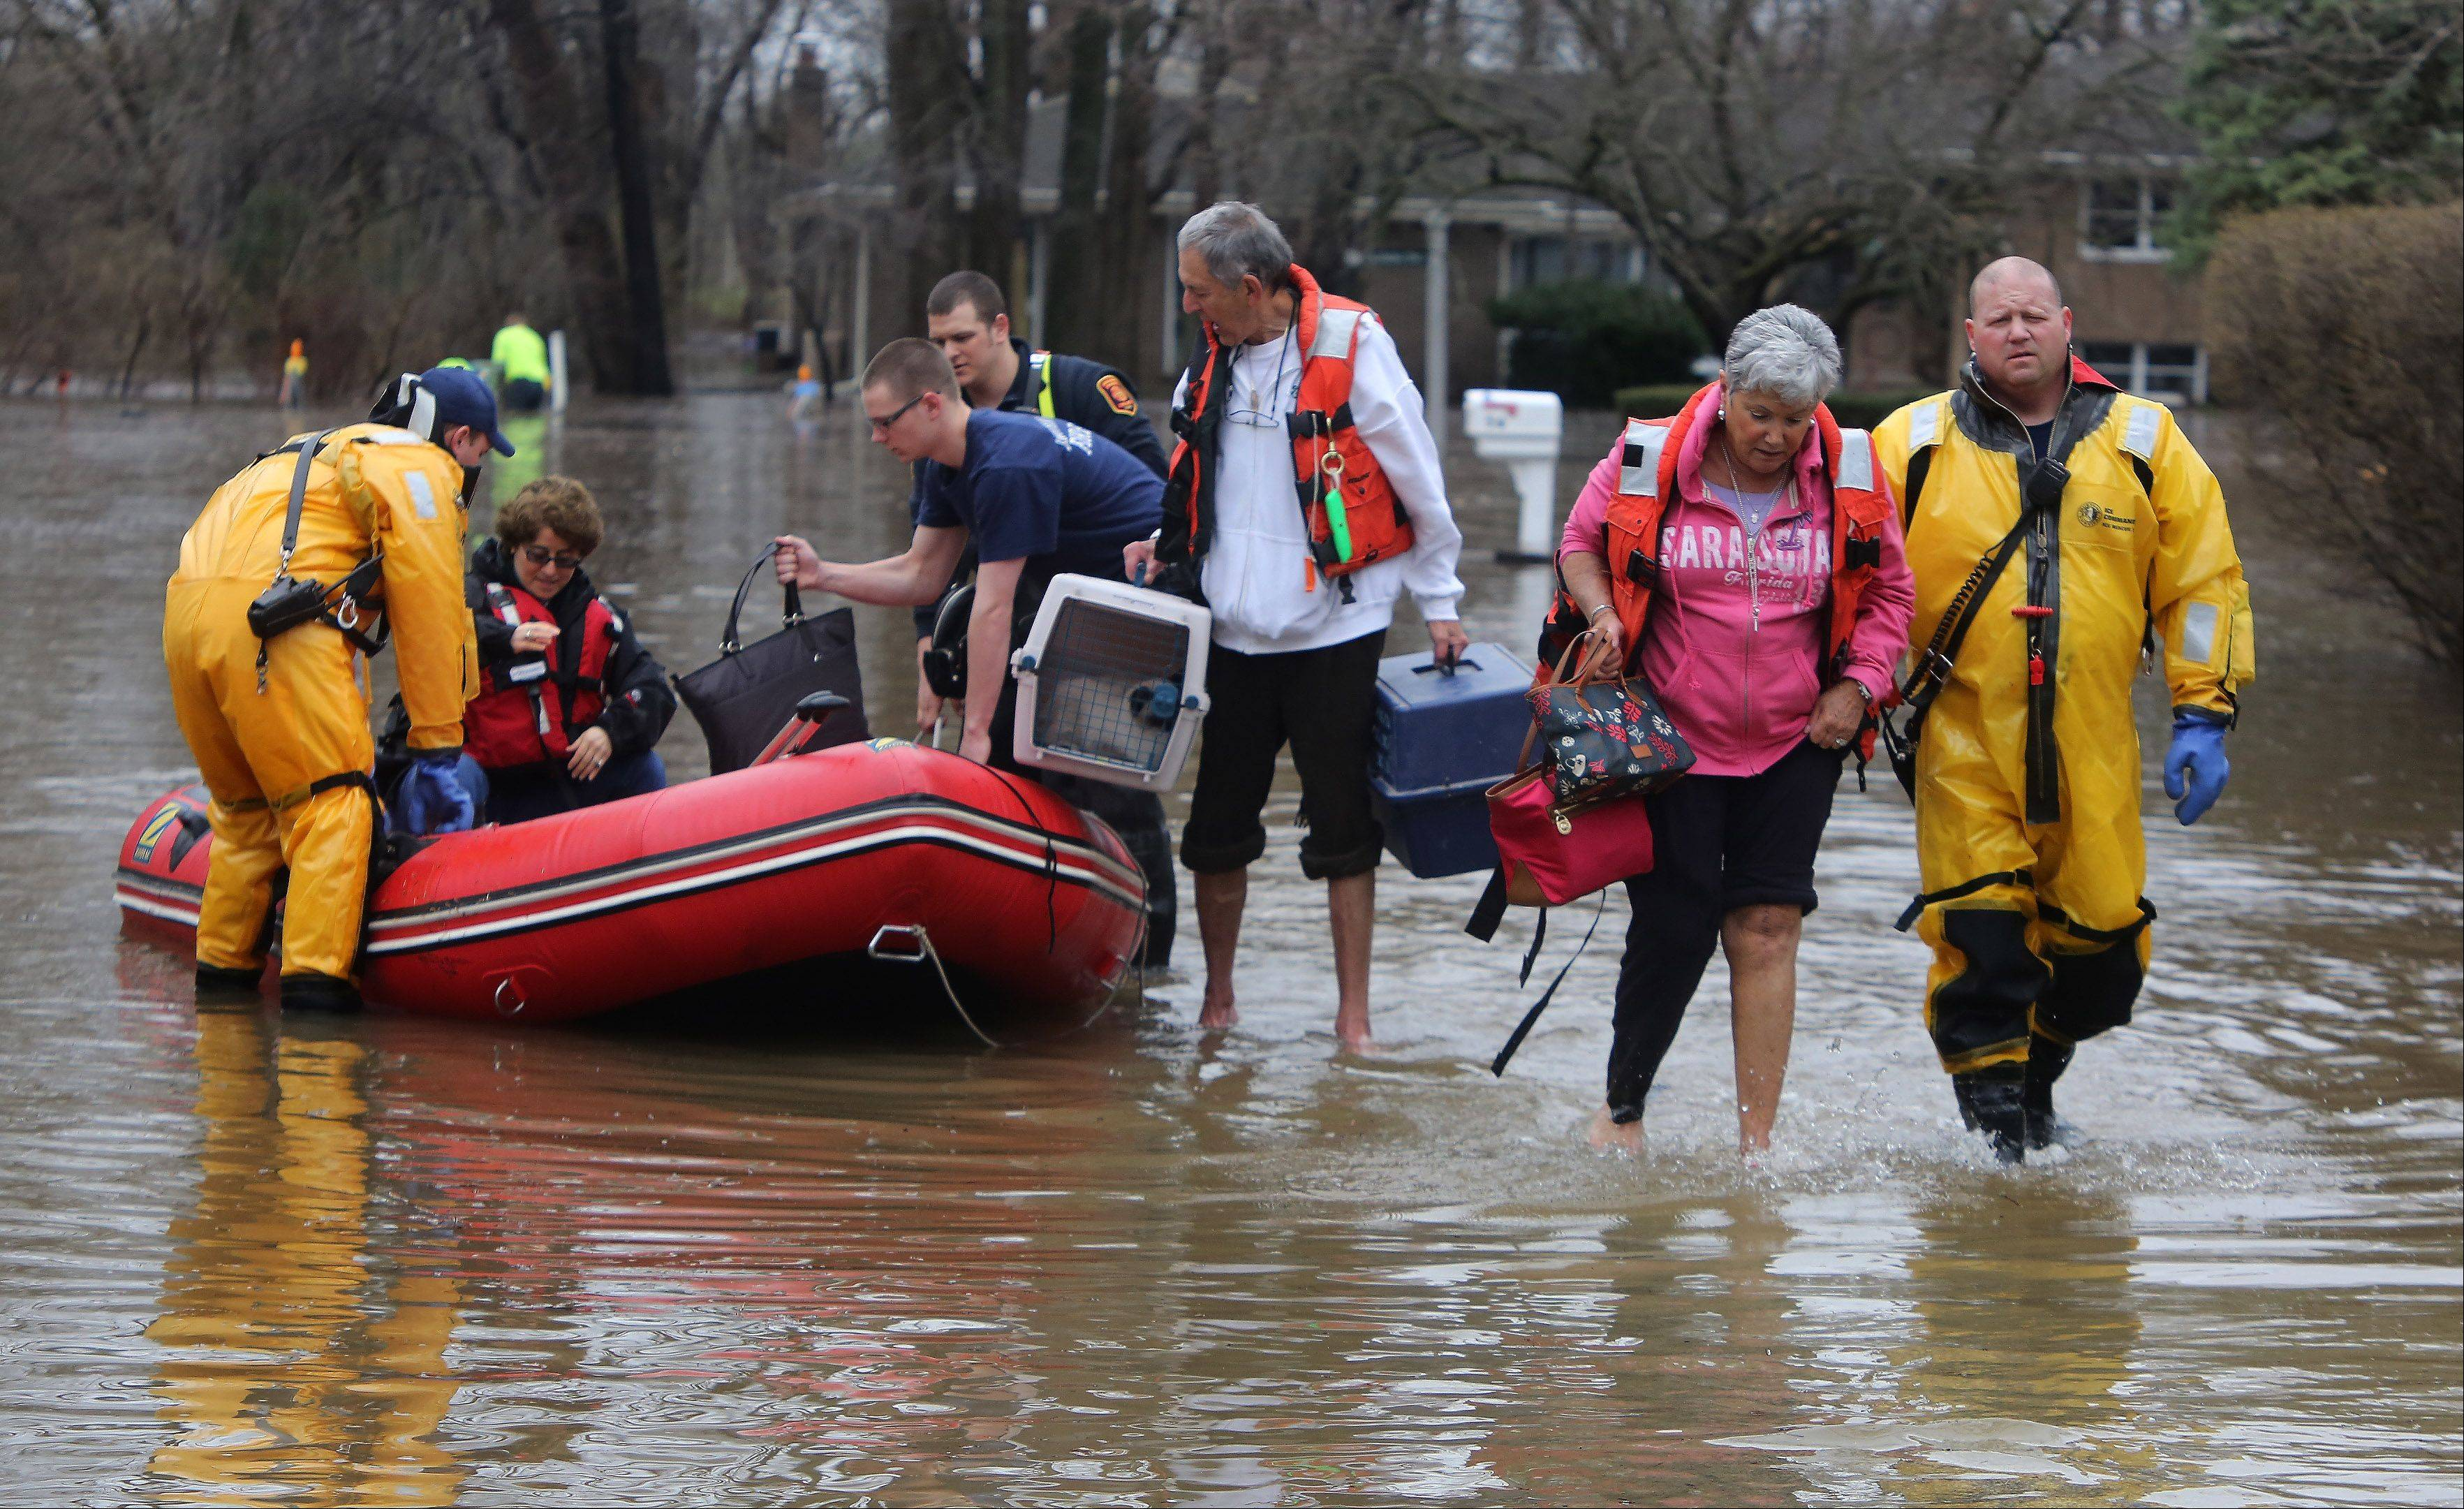 Firefighter Jason Stockton, of the Lincolnshire-Riverwoods Fire Department, helps resident Arlene Marshack, right, as other firefighters help her husband, Martin, and another homeowner, Wendy Kritt, along Lincolnshire Drive after flooding overwhelmed the neighborhood in Lincolnshire in April.